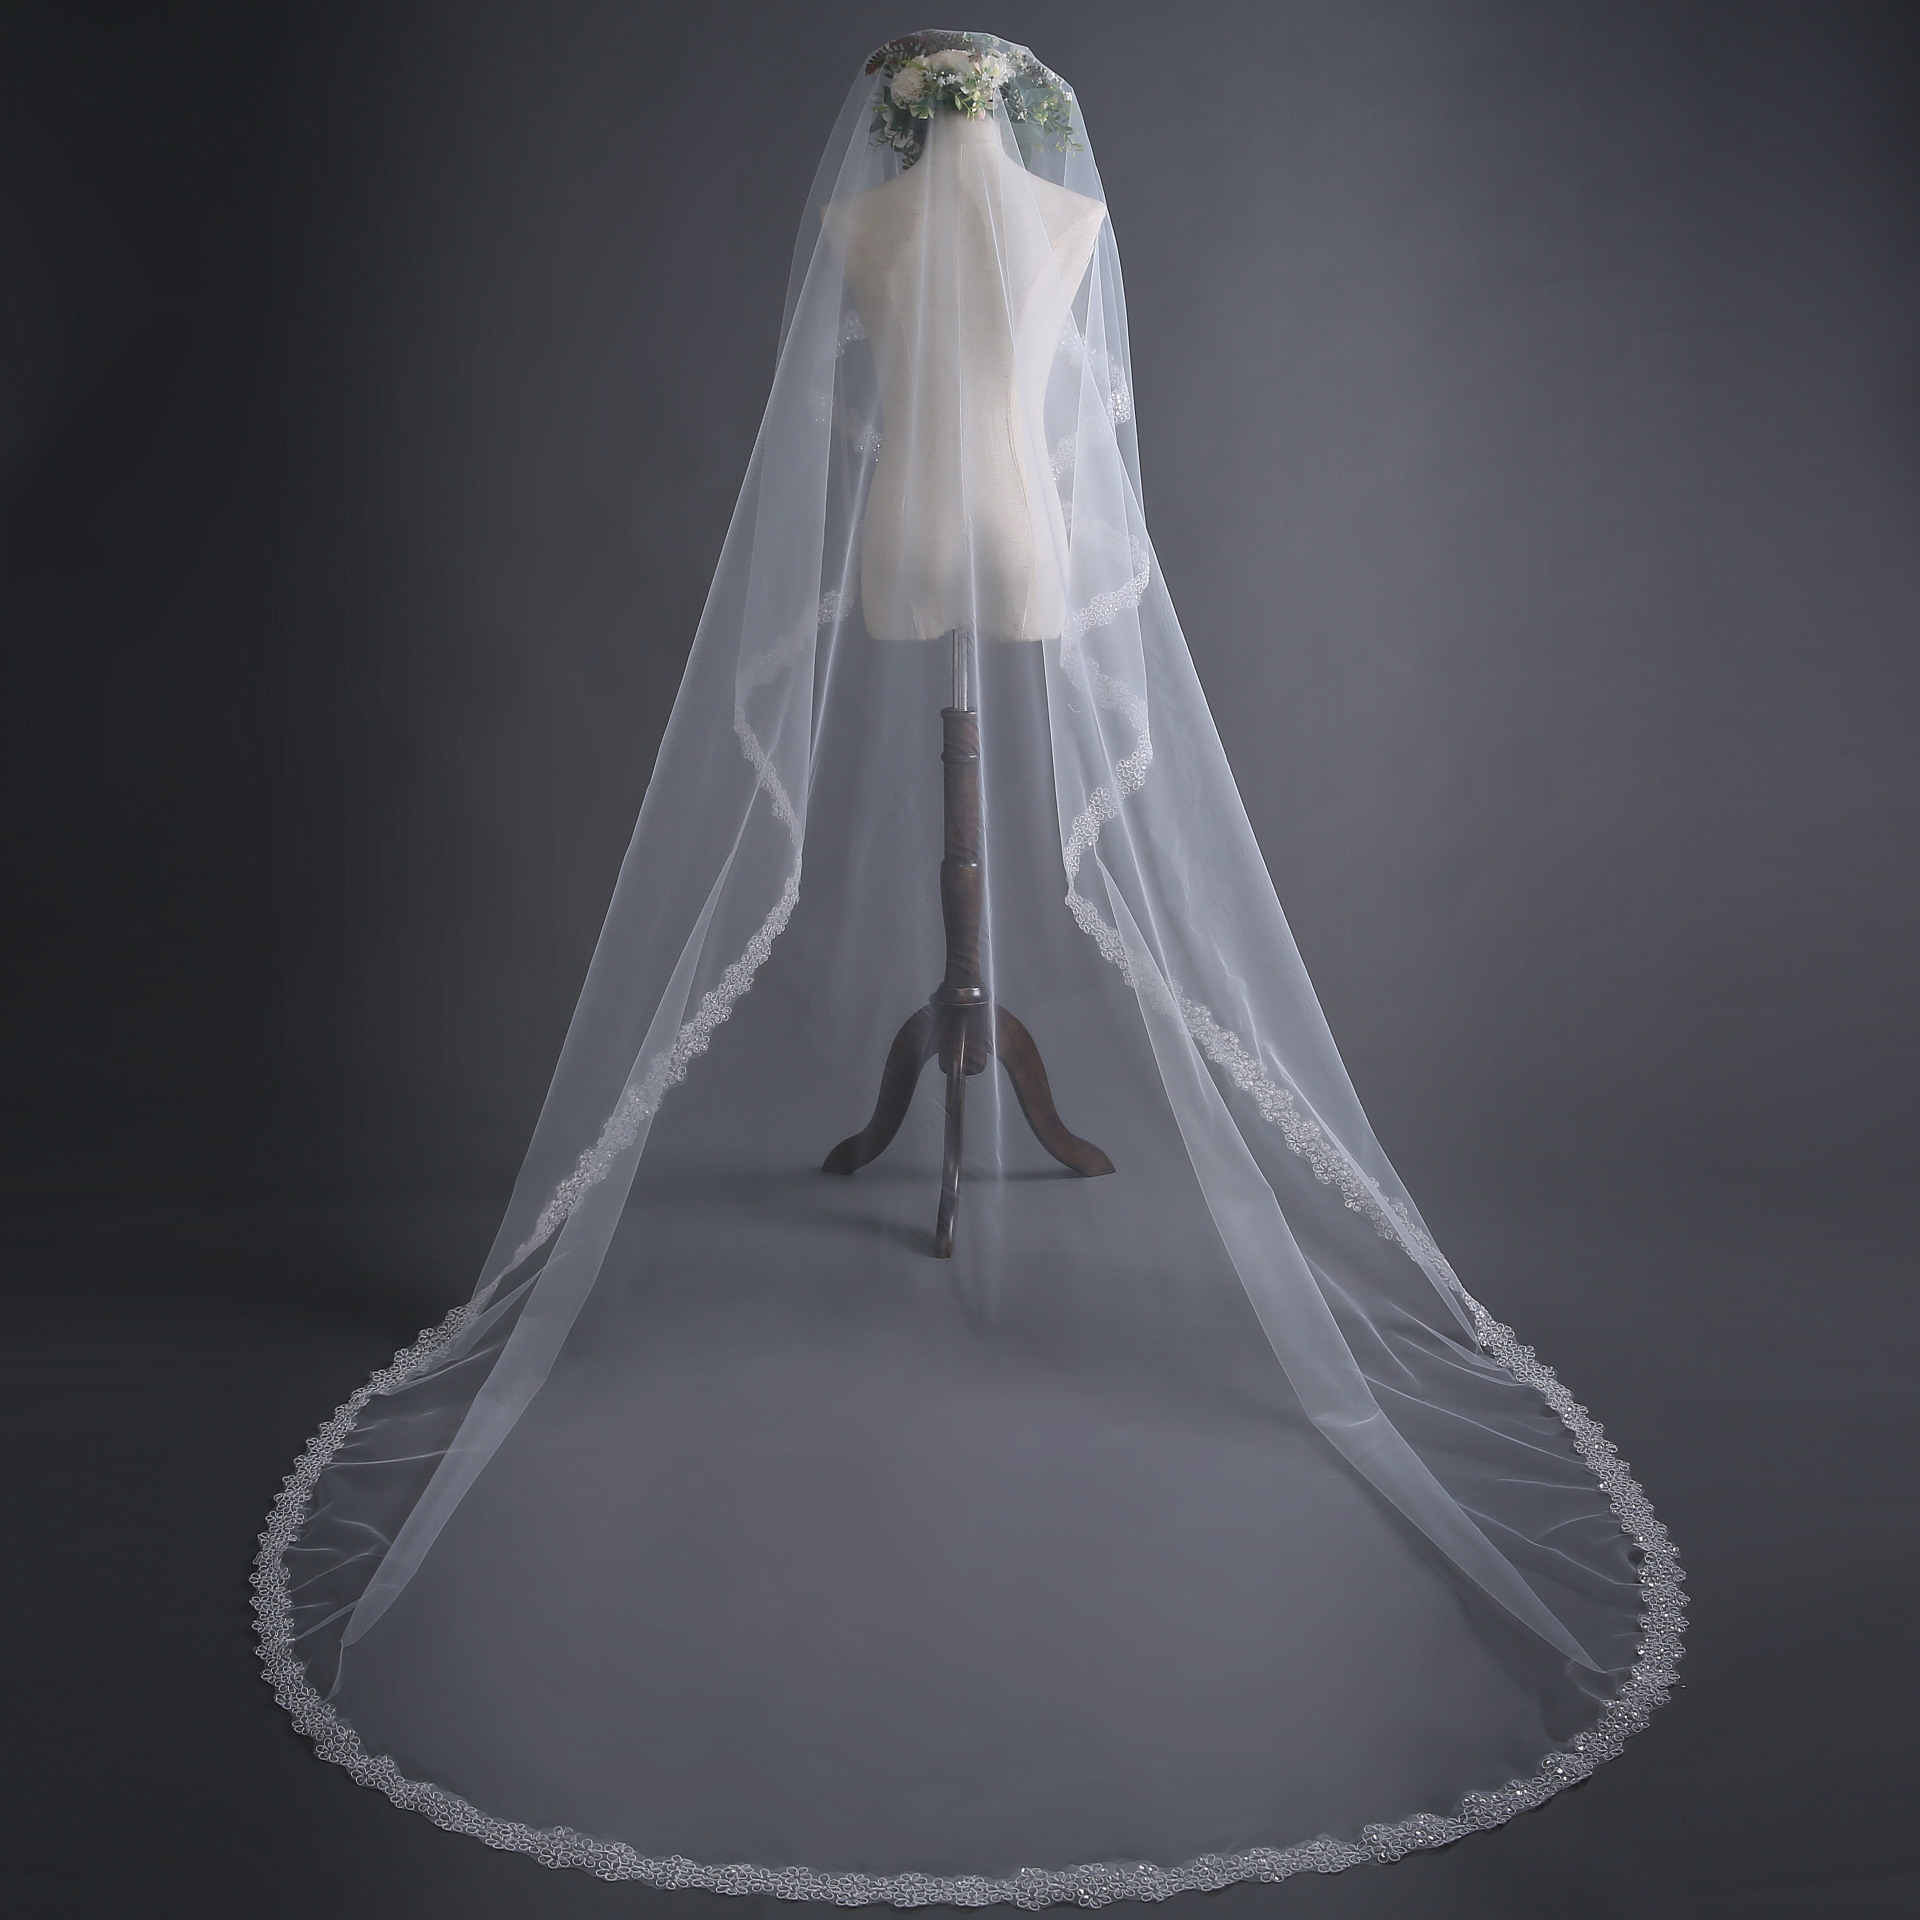 Cheap 3 Meters Wedding Veils With Comb Full Lace Edge One Layers Long Bridal Veil Velo De Novia